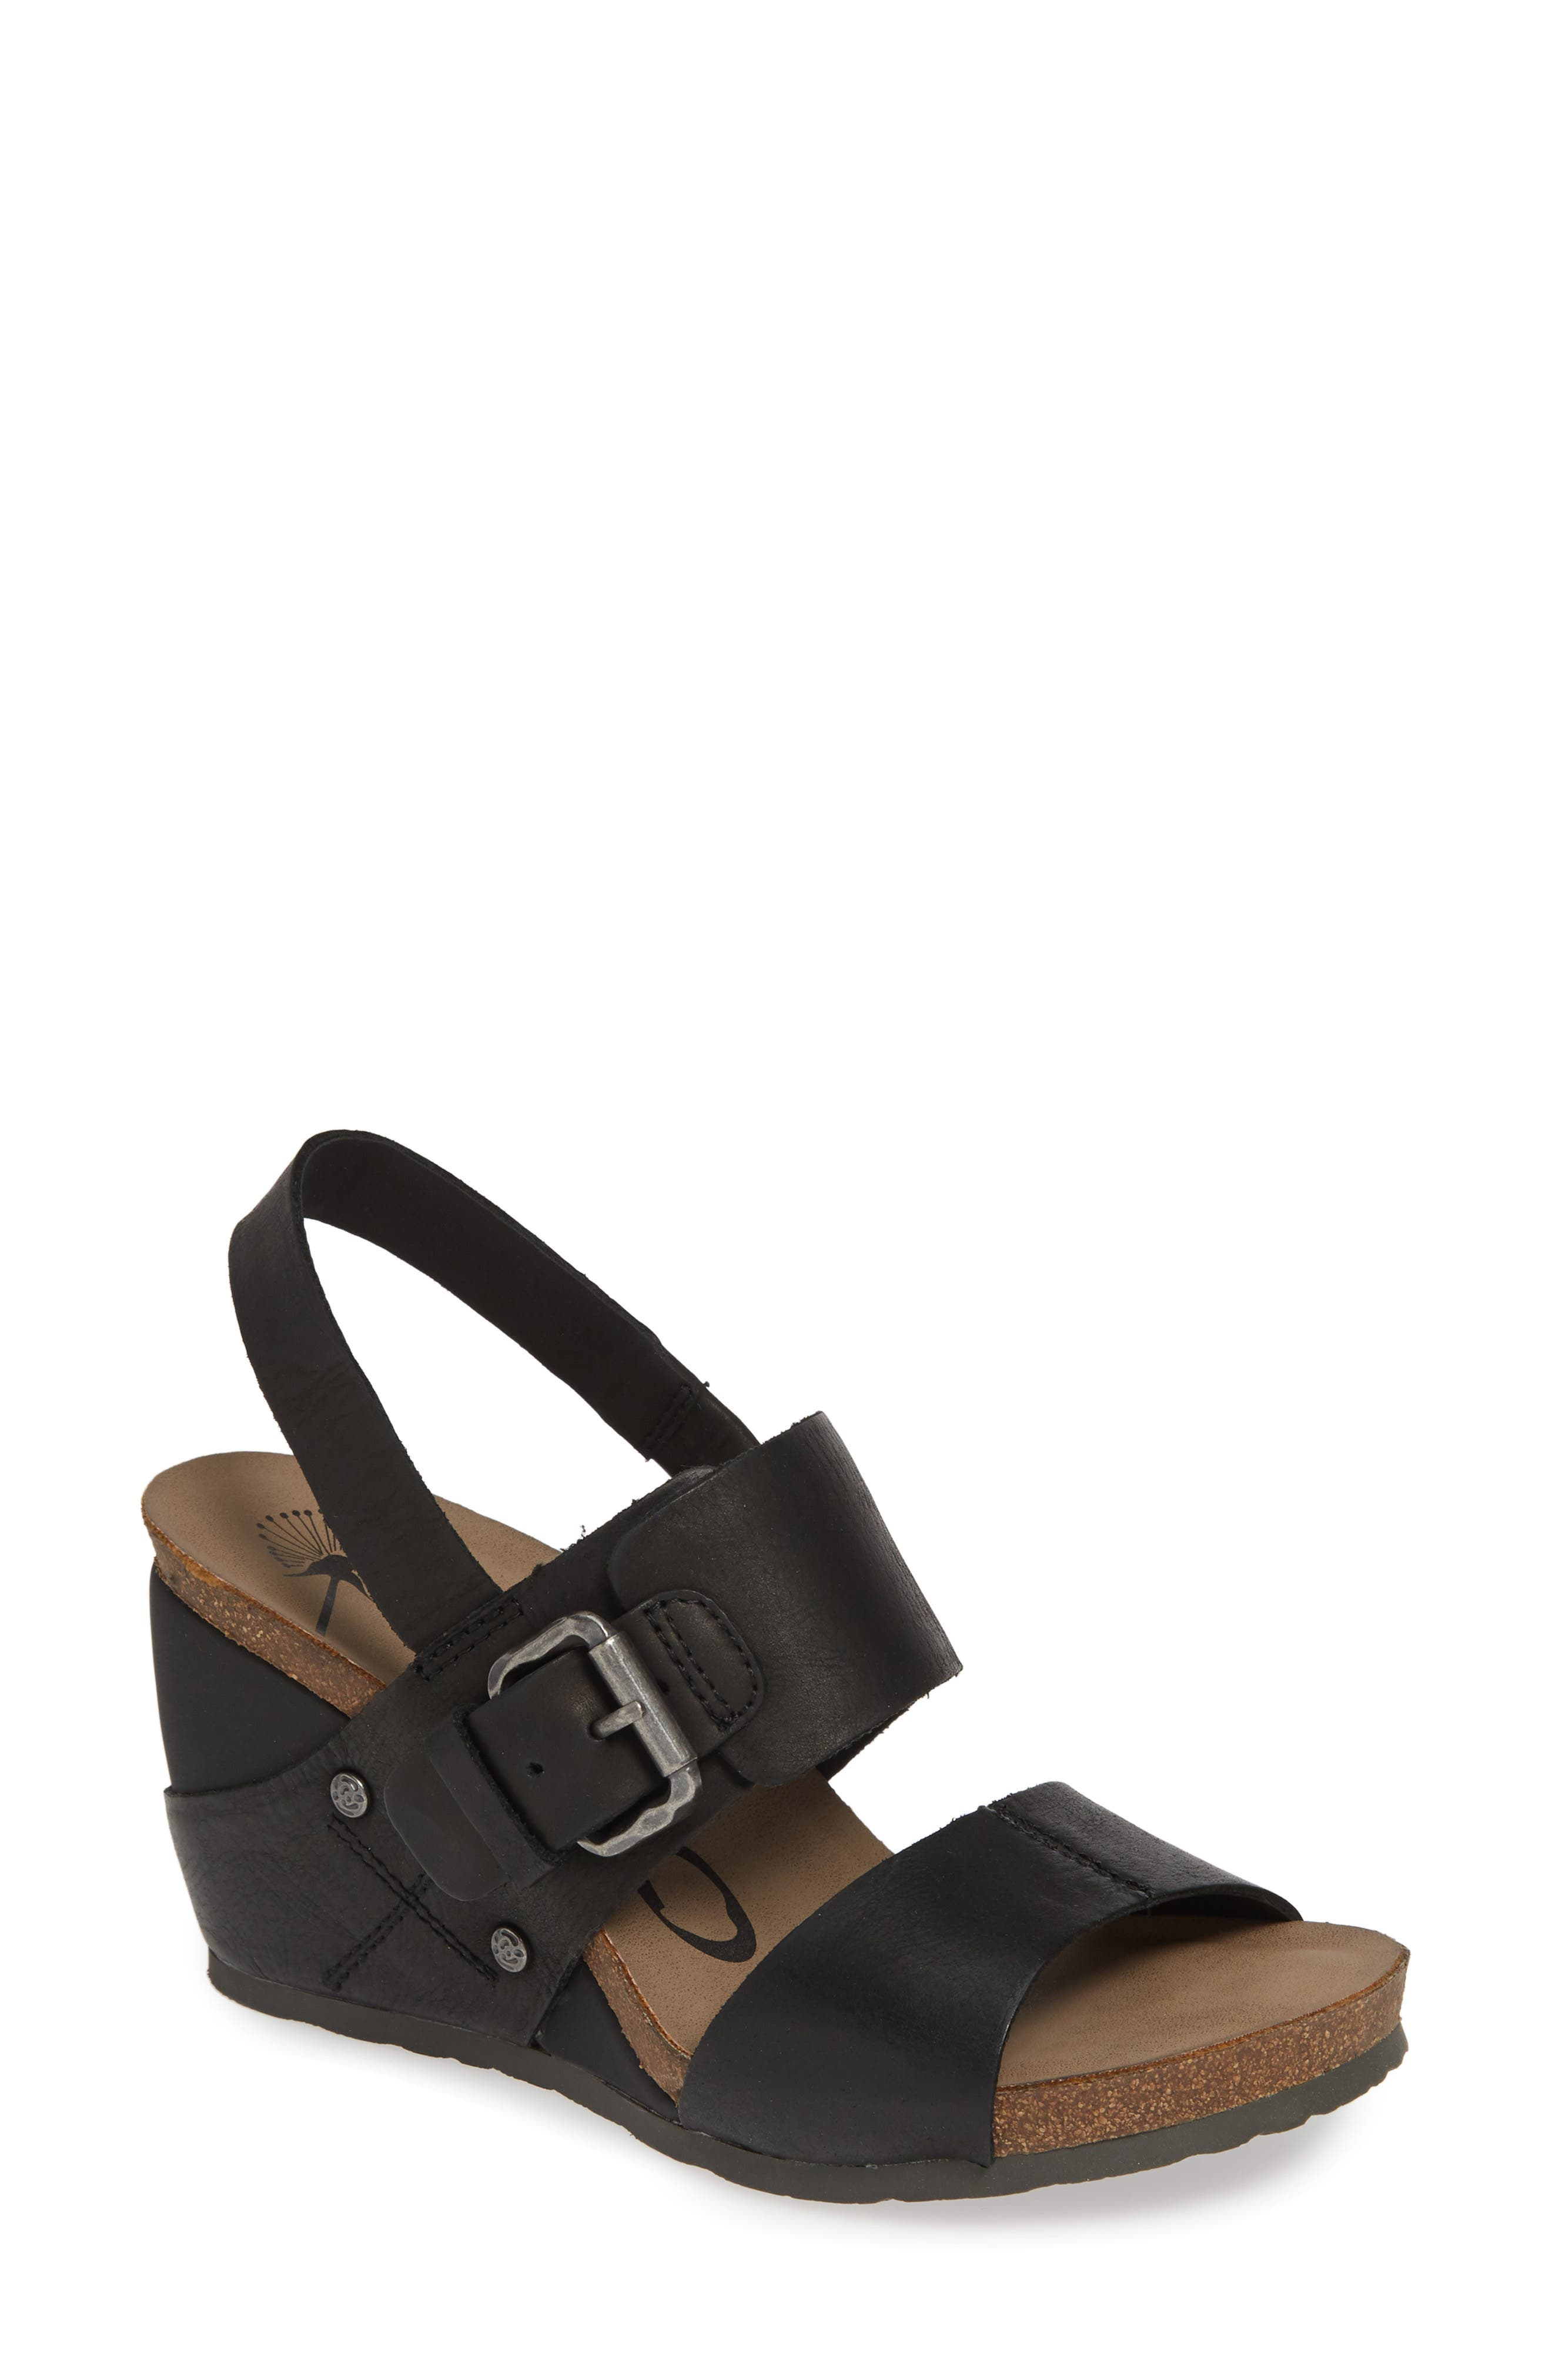 OTBT, Overnight Wedge Sandal, Main thumbnail 1, color, BLACK LEATHER